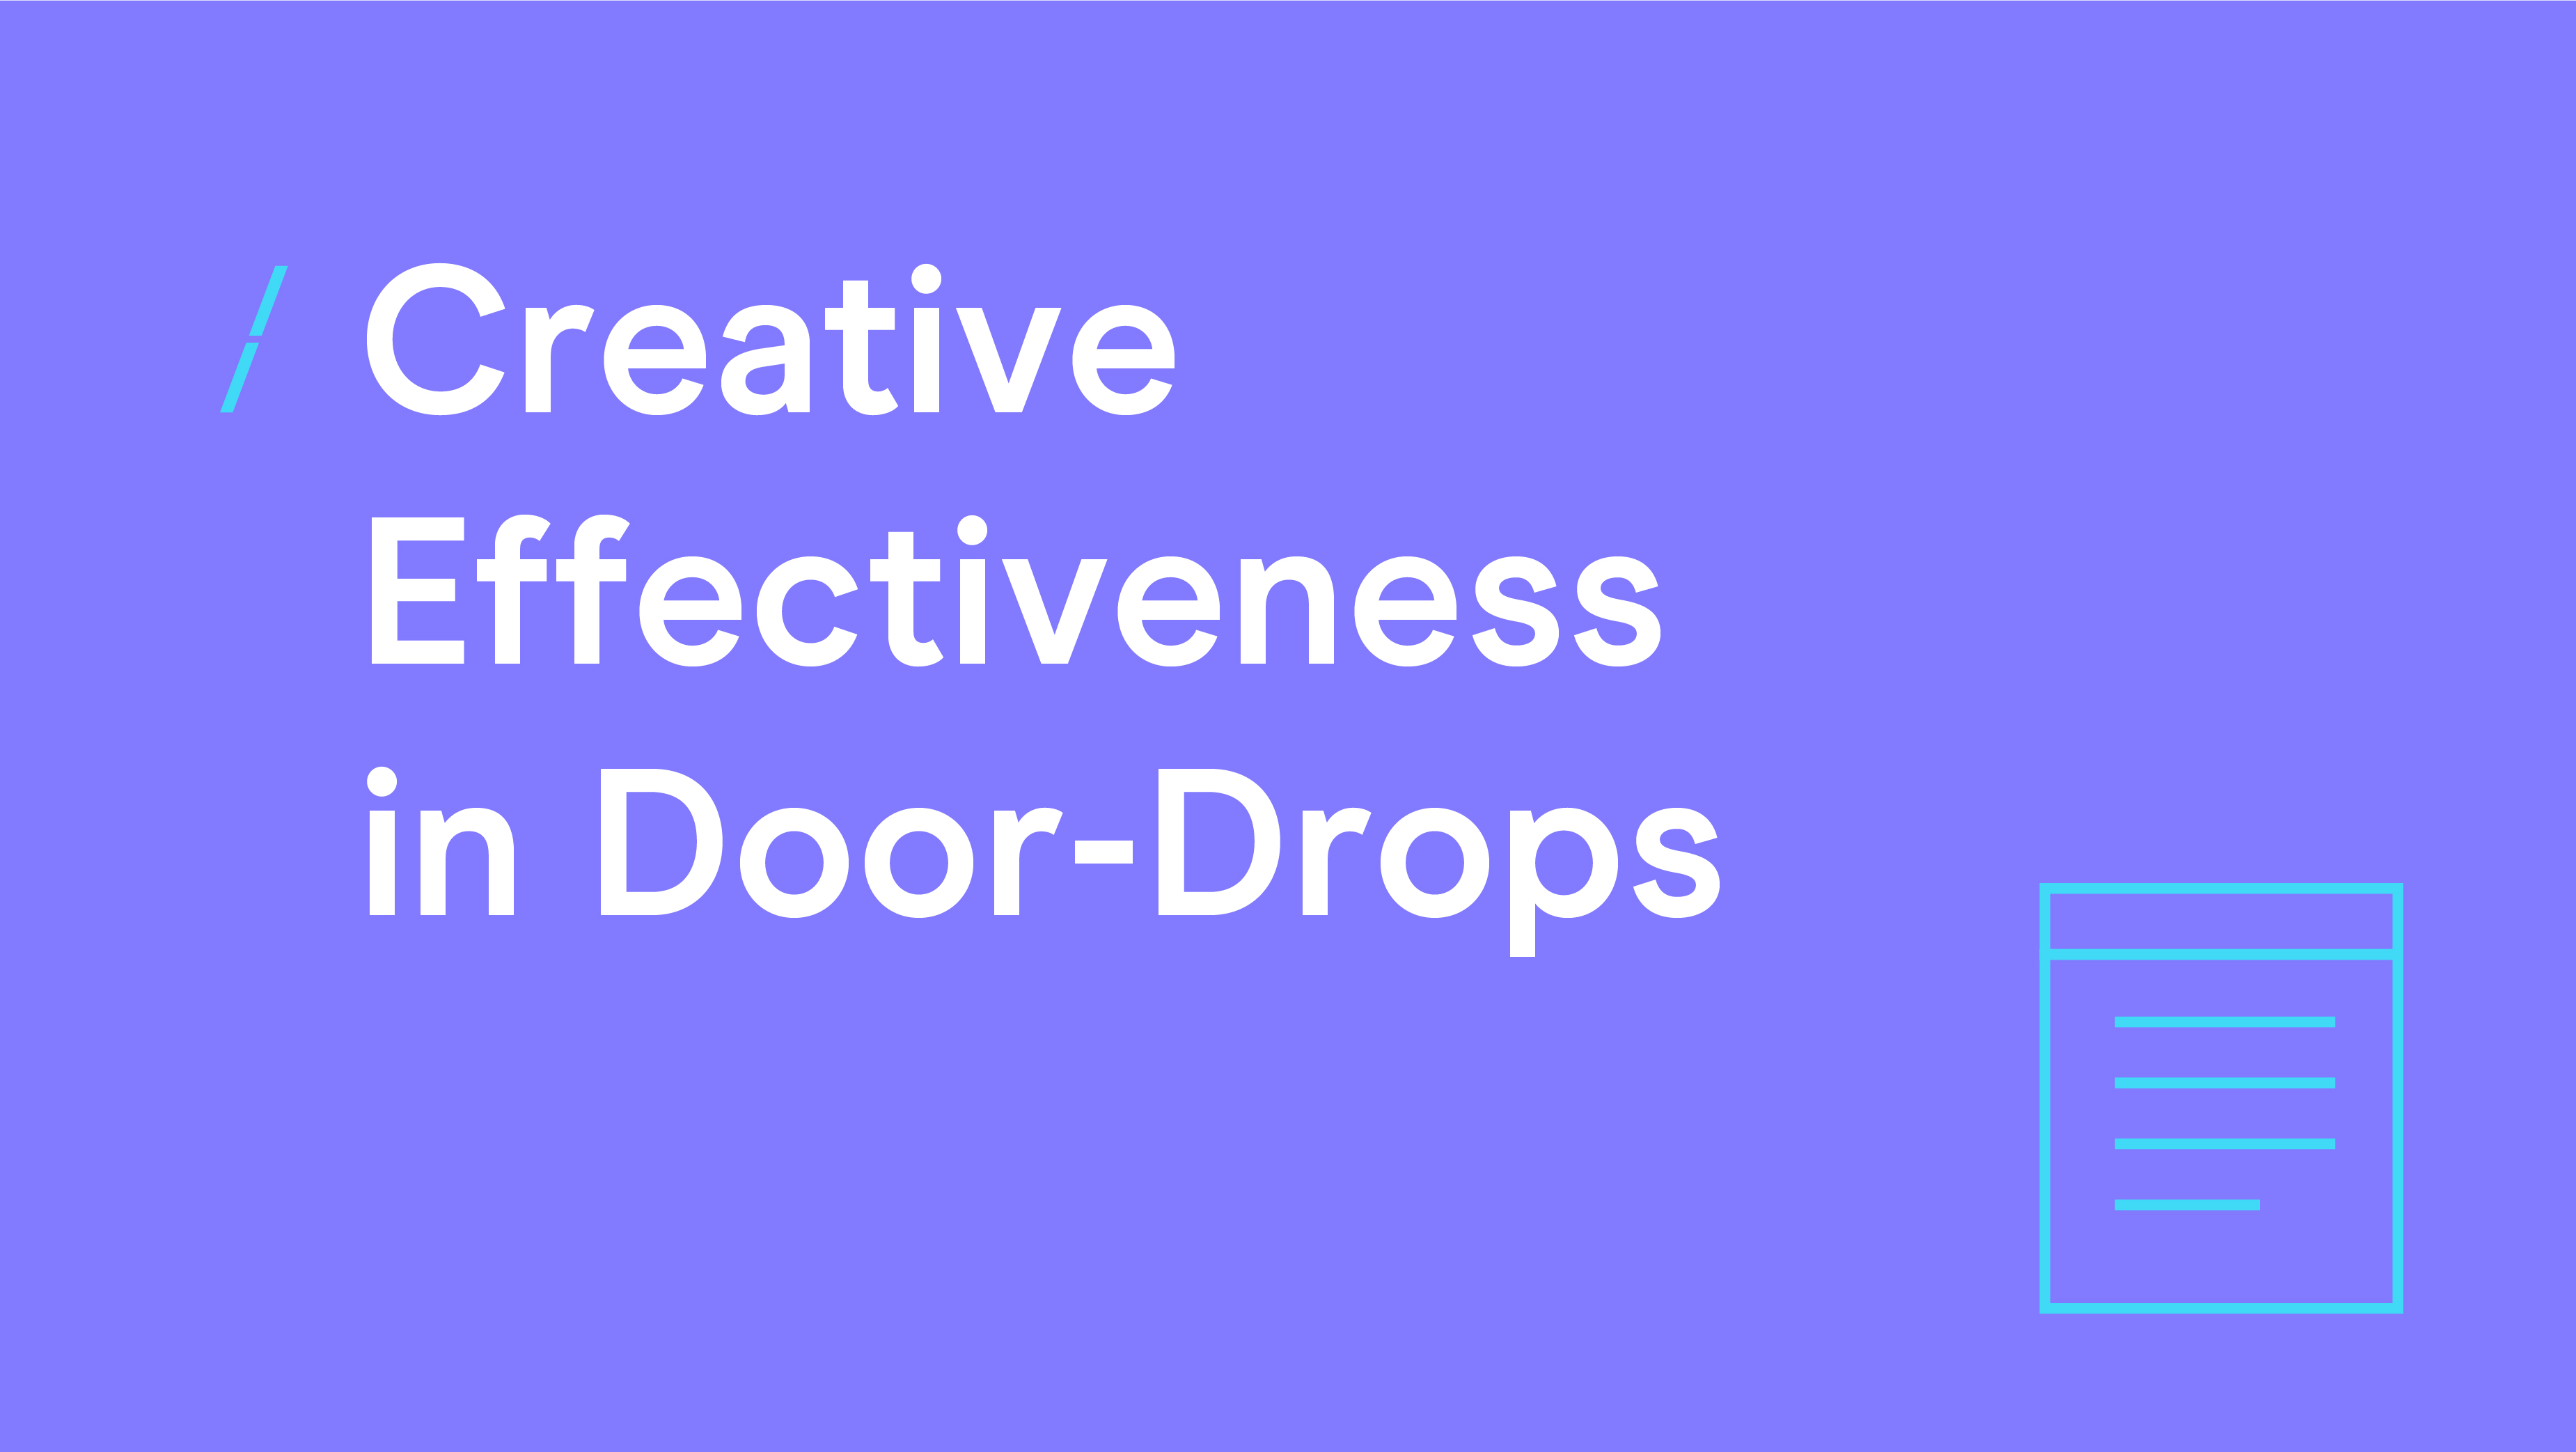 Creative Effectiveness in Door-Drops_Events copy 4.jpg